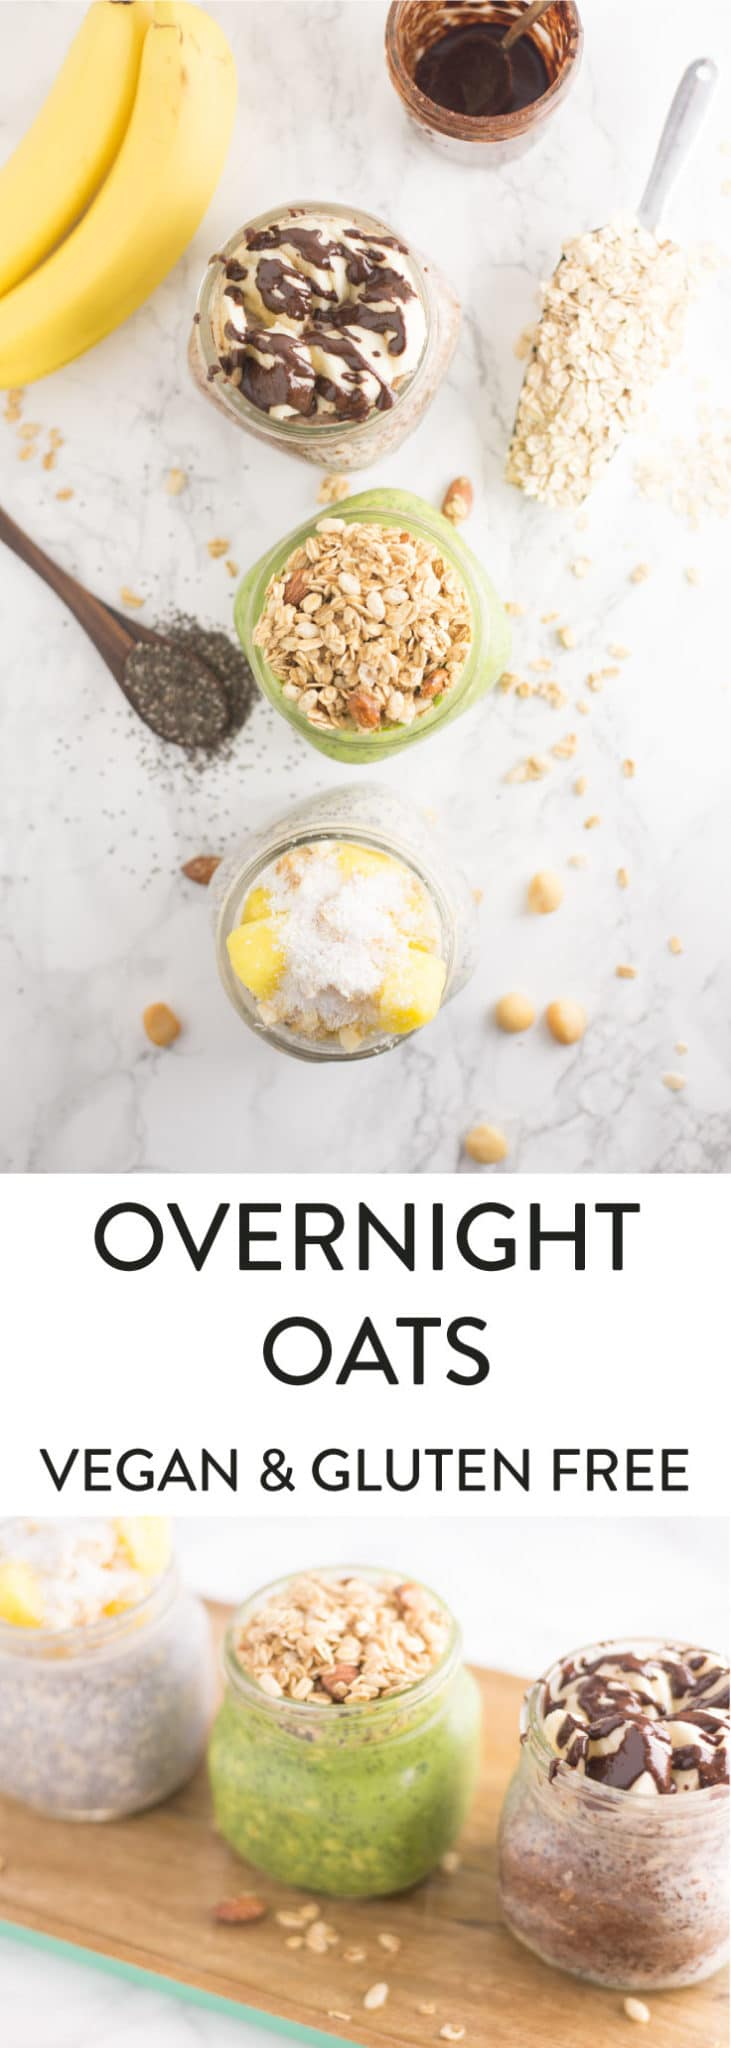 Easy Overnight Oats 3 ways -- Spinach and mango, pineapple and coconut, and nutella with bananas! Just three ingredients to make the base of this nutritious breakfast for a quick and easy plant based meal - mindfulavocado